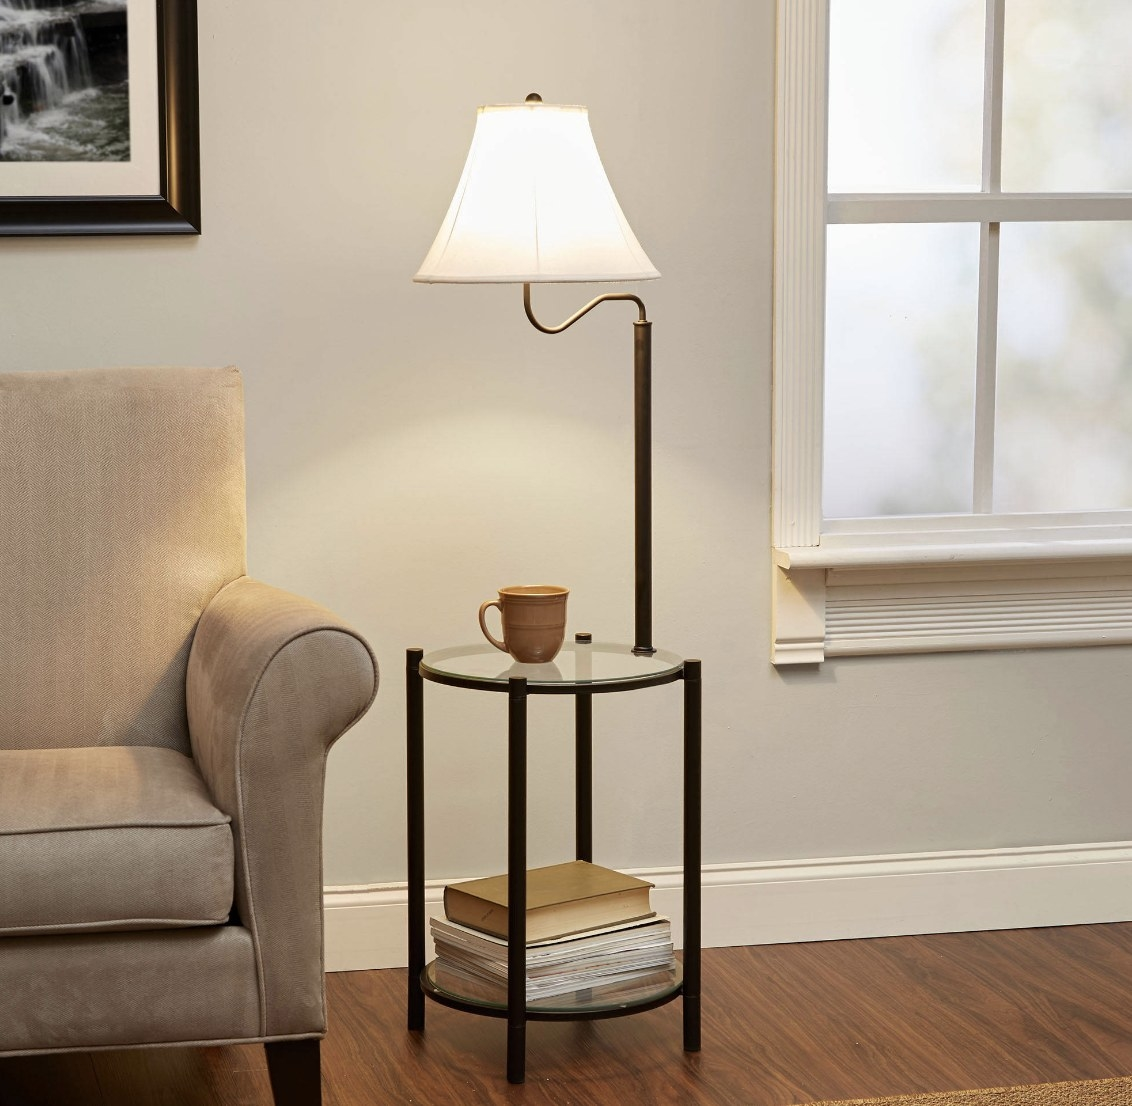 The black side table has clear panels and a black framed lamp with a white shade